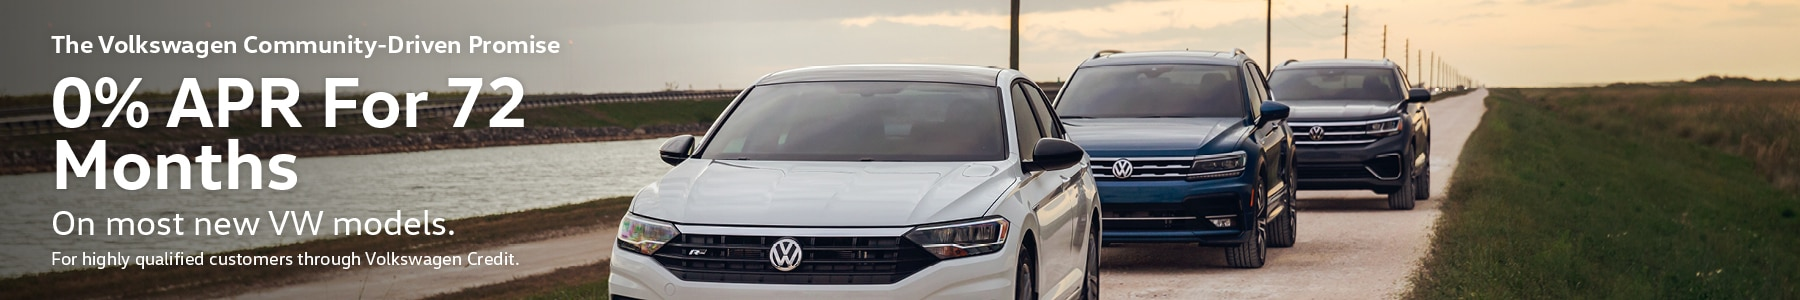 The Volkswagen Community-Driven Promise. 0% APR For 72 Months On most new VW models. For highly qualified customers through Volkswagen Credit. Disclaimer: 0% APR, no down payment required. Available on new, unused 2020 Tiguan, 2020 Jetta, 2020 Jetta GLI, 2020 Passat, 2020 Golf GTI, 2019 Golf Sport,  2019 Golf Alltrack, 2020 Golf ALL, 2019 Beetle, 2019 Golf R, 2020 Arteon, models financed by Volkswagen Credit through participating dealers only. Example: For 0% APR, monthly payment for every $1,000 you finance for 72 months is $13.89. Available on new, unused 2020 Atlas Cross Sport models financed by Volkswagen Credit through participating dealers only. Example: For 0% APR, monthly payment for every $1,000 you finance for 60 months is $16.67. Available on new, unused 2021 Atlas models financed by Volkswagen Credit through participating dealers only. Example: For 2.9% APR, monthly payment for every $1,000 you finance for 60 months is $17.92. Not all customers will qualify for credit approval or advertised APR. Offer ends August 31, 2020.